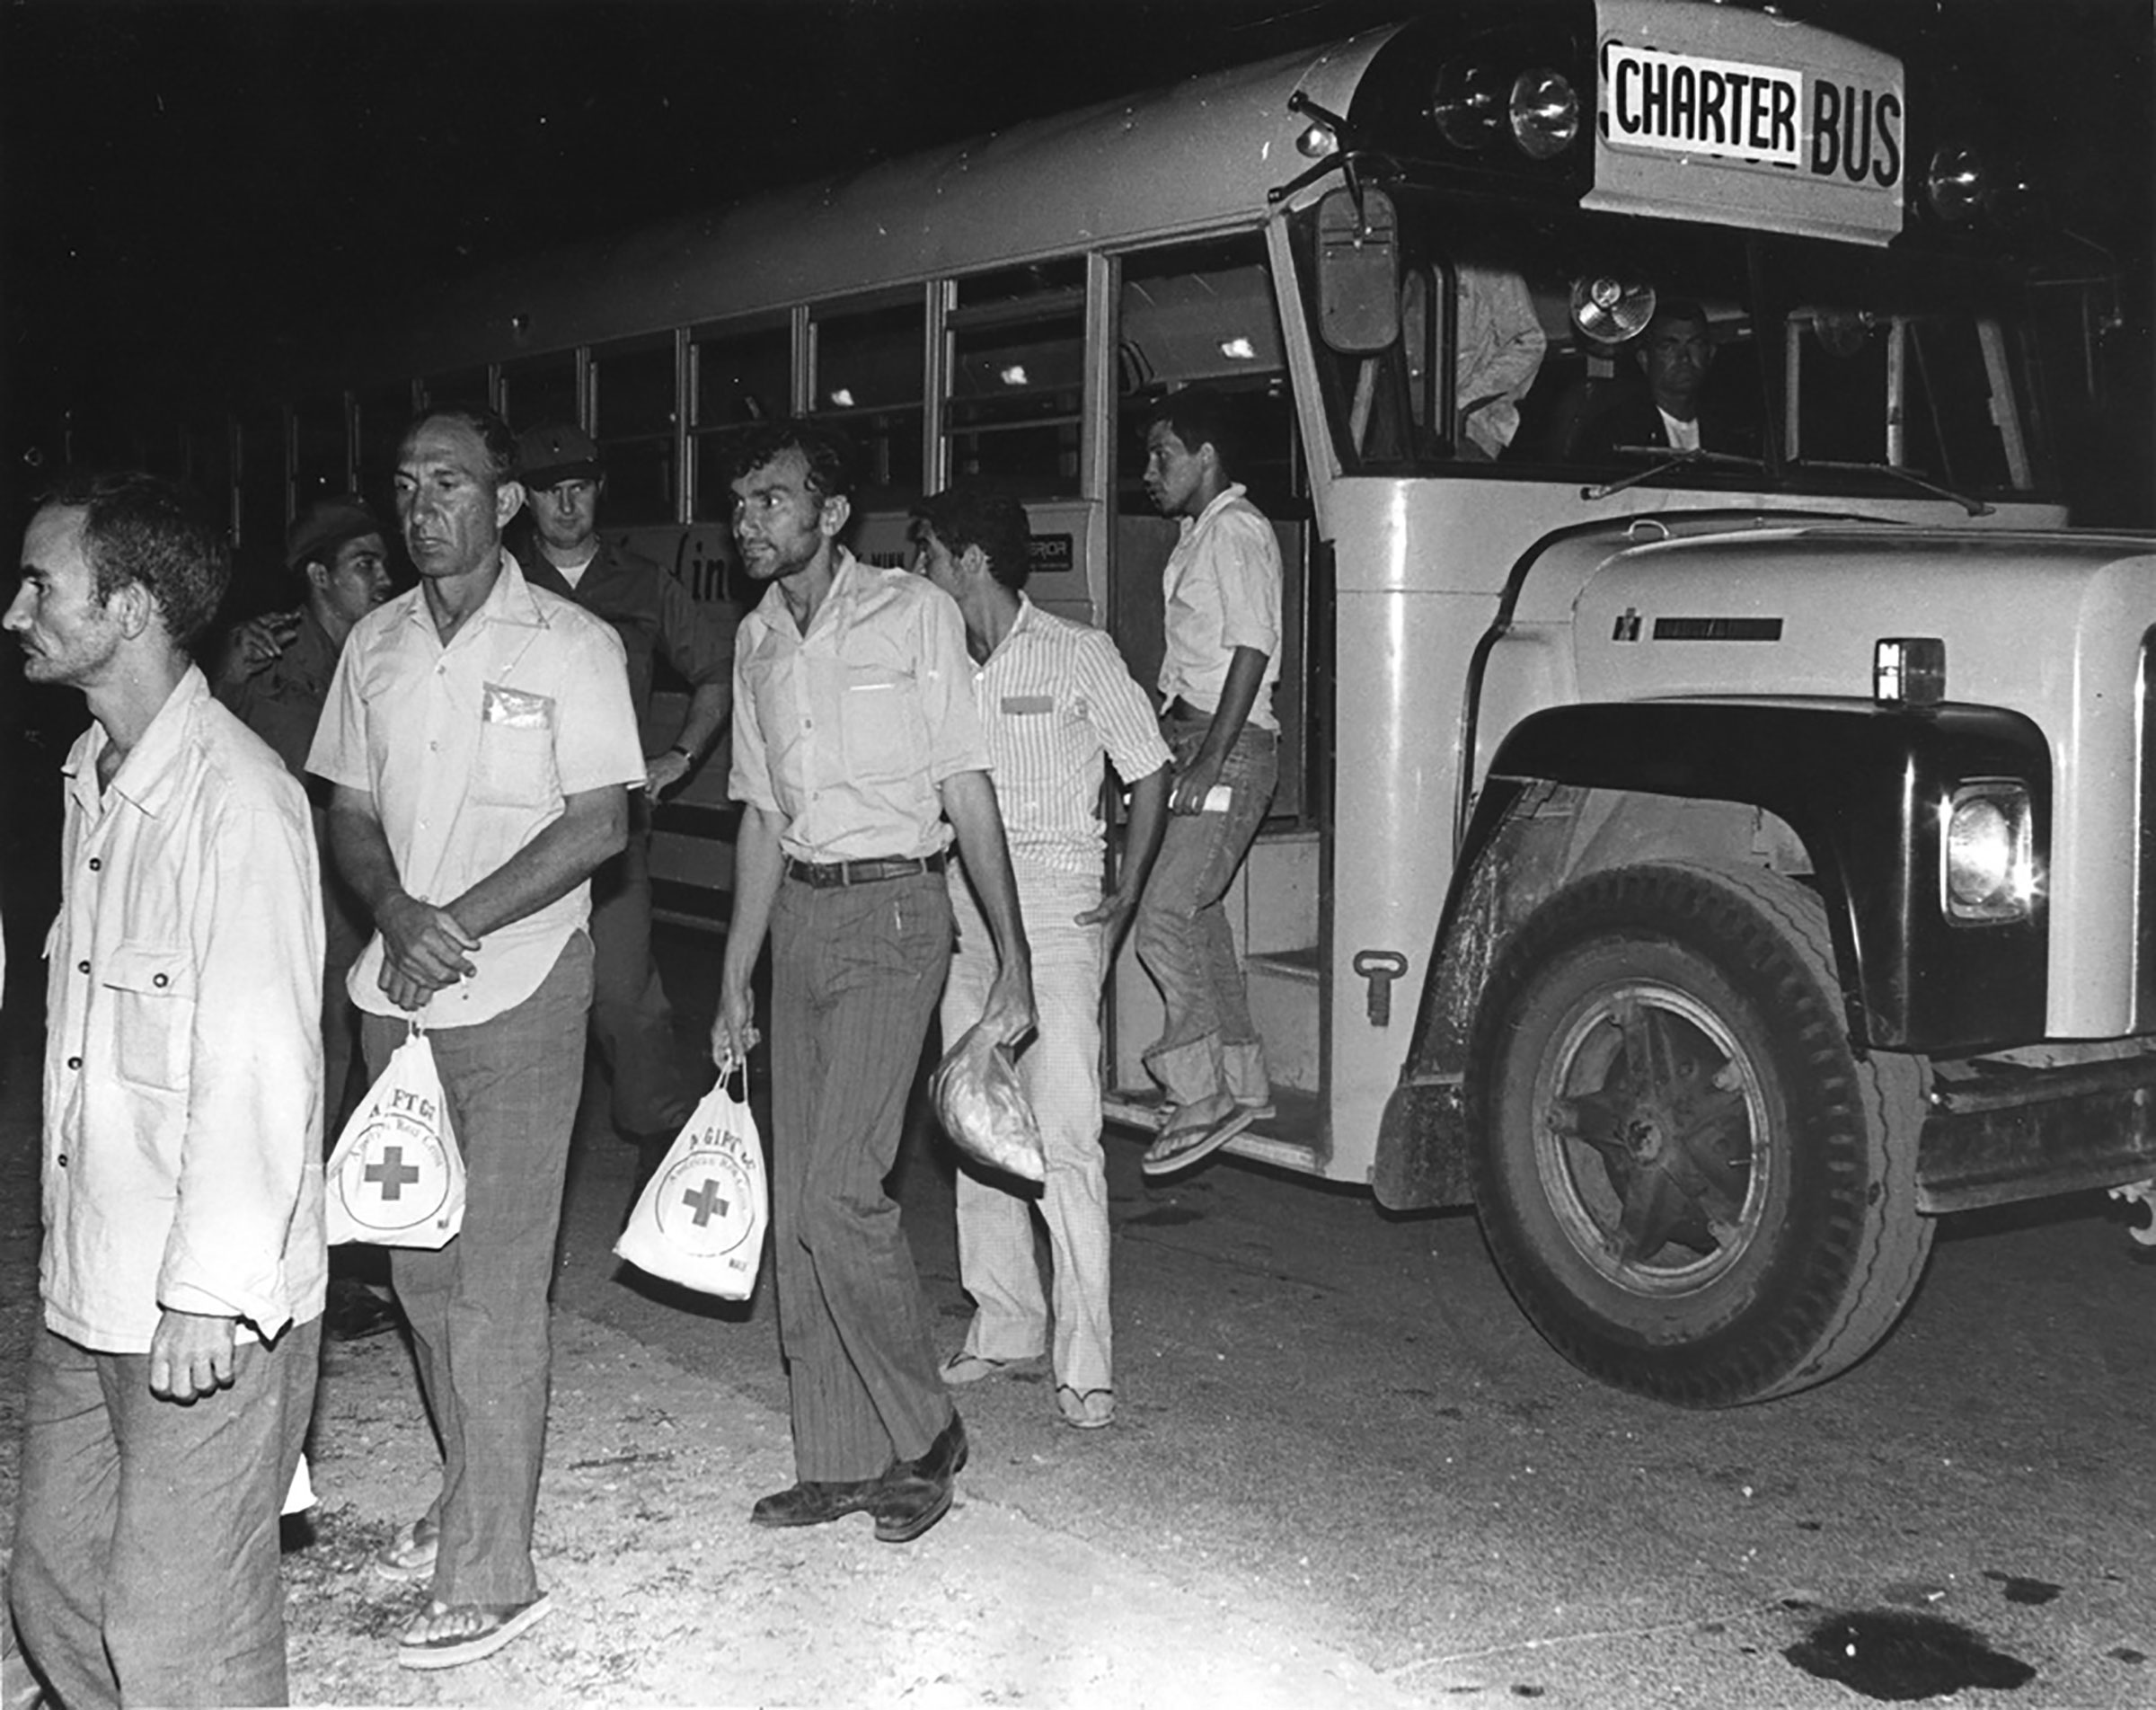 Cuban refugees step off a bus and into a holding area at Fort McCoy in 1980 after a ride from the La Crosse Municipal Airport. Fort McCoy served as a processing center for Cuban refugees from the Mariel Boatlift.